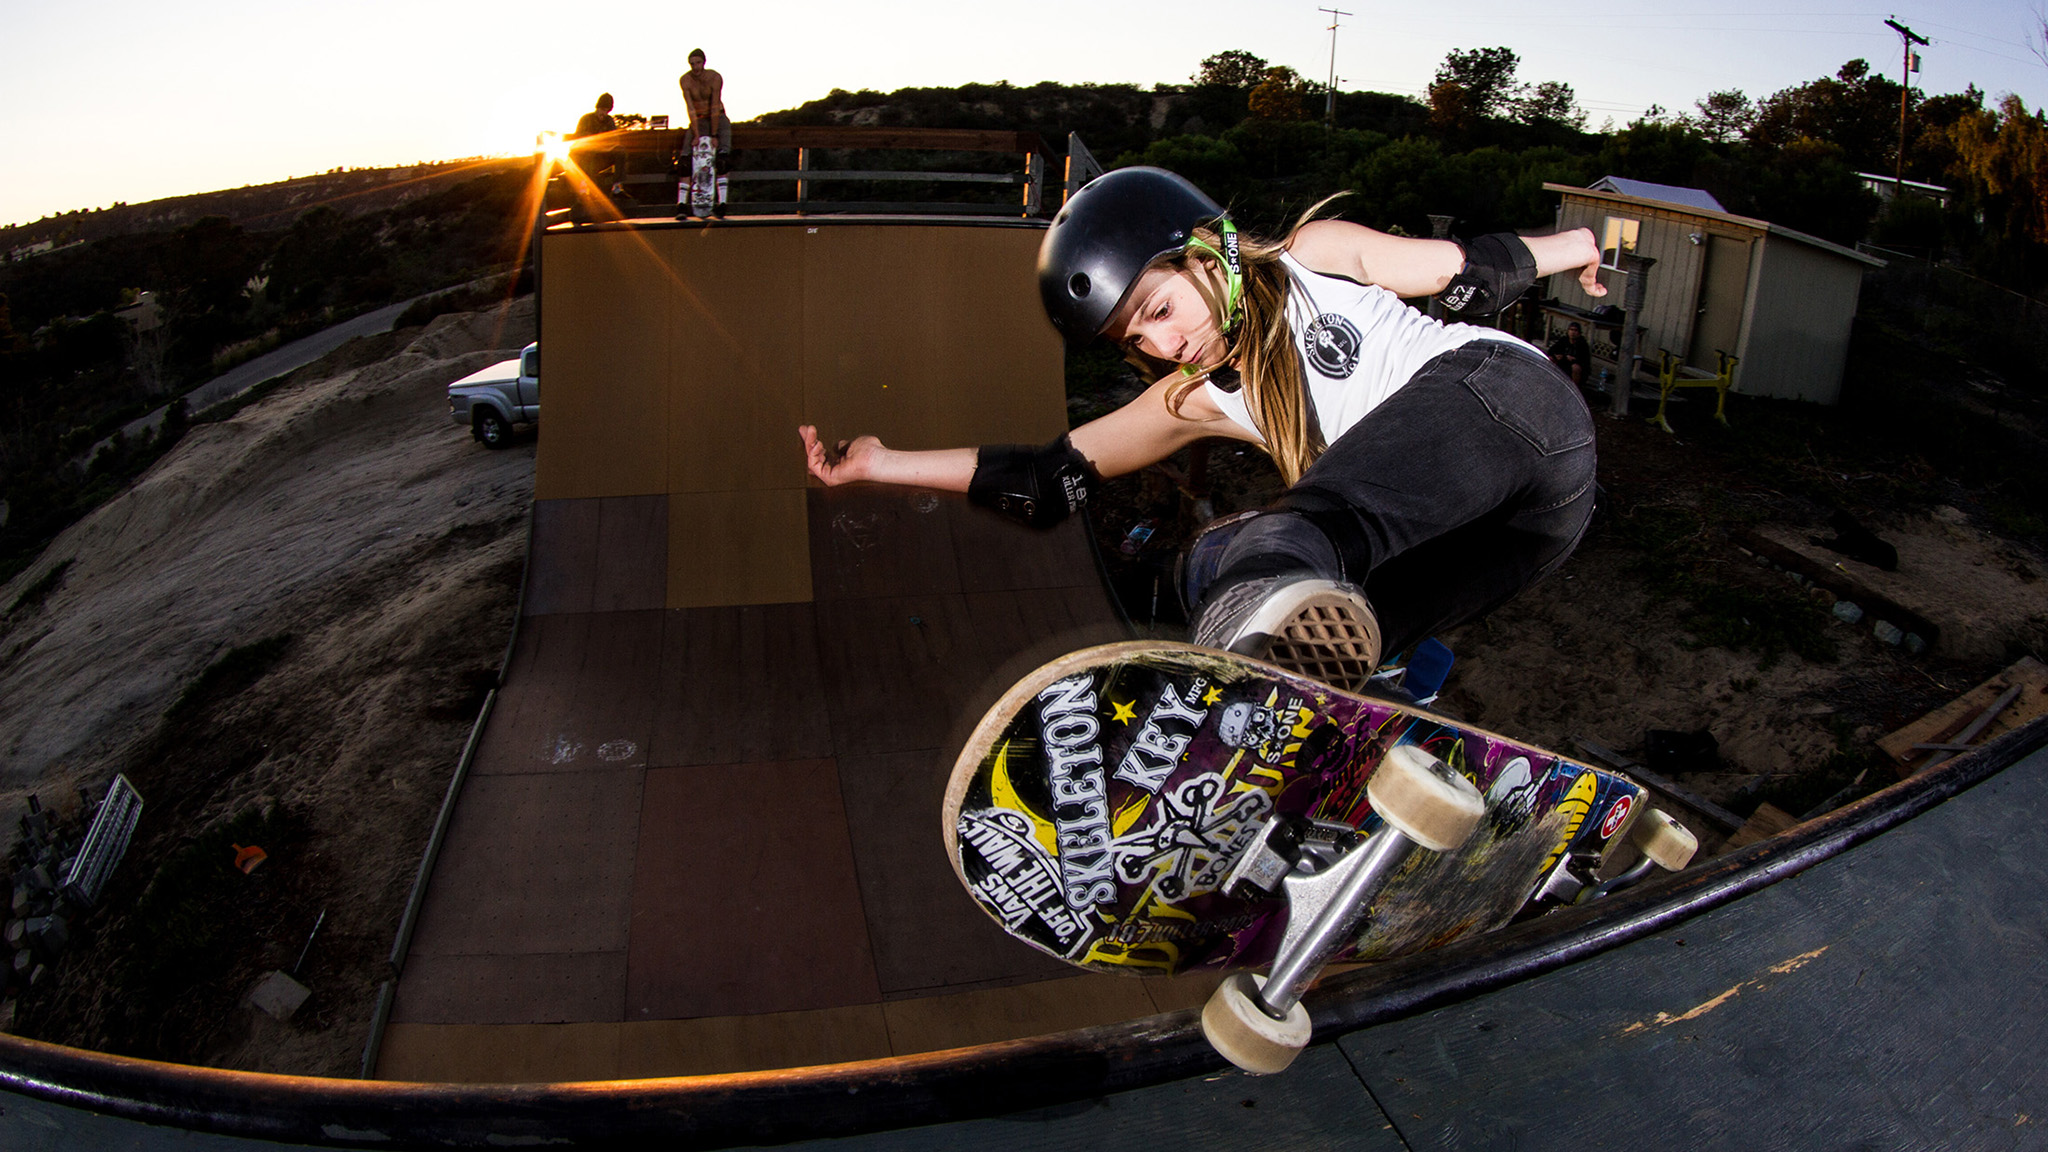 Women's Skateboard Park: Allysha, Brighton and Lizzie